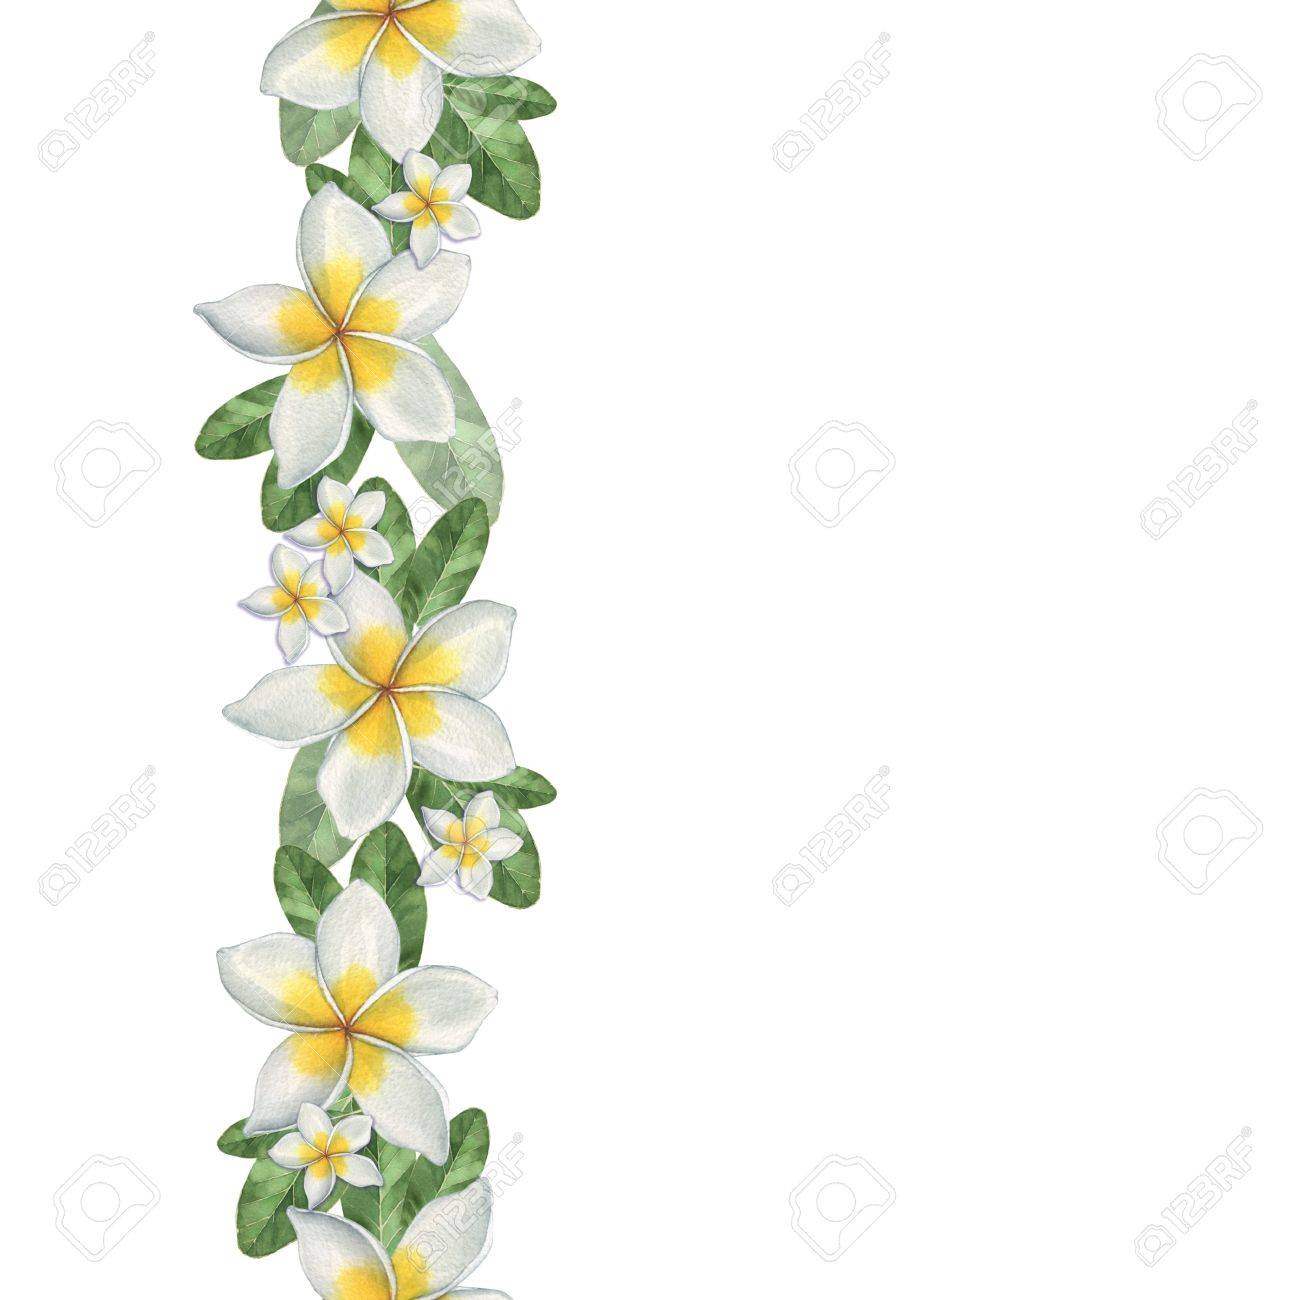 1300x1300 Hawaiian Flowers. Seamless Border. Watercolor Illustration. Hand